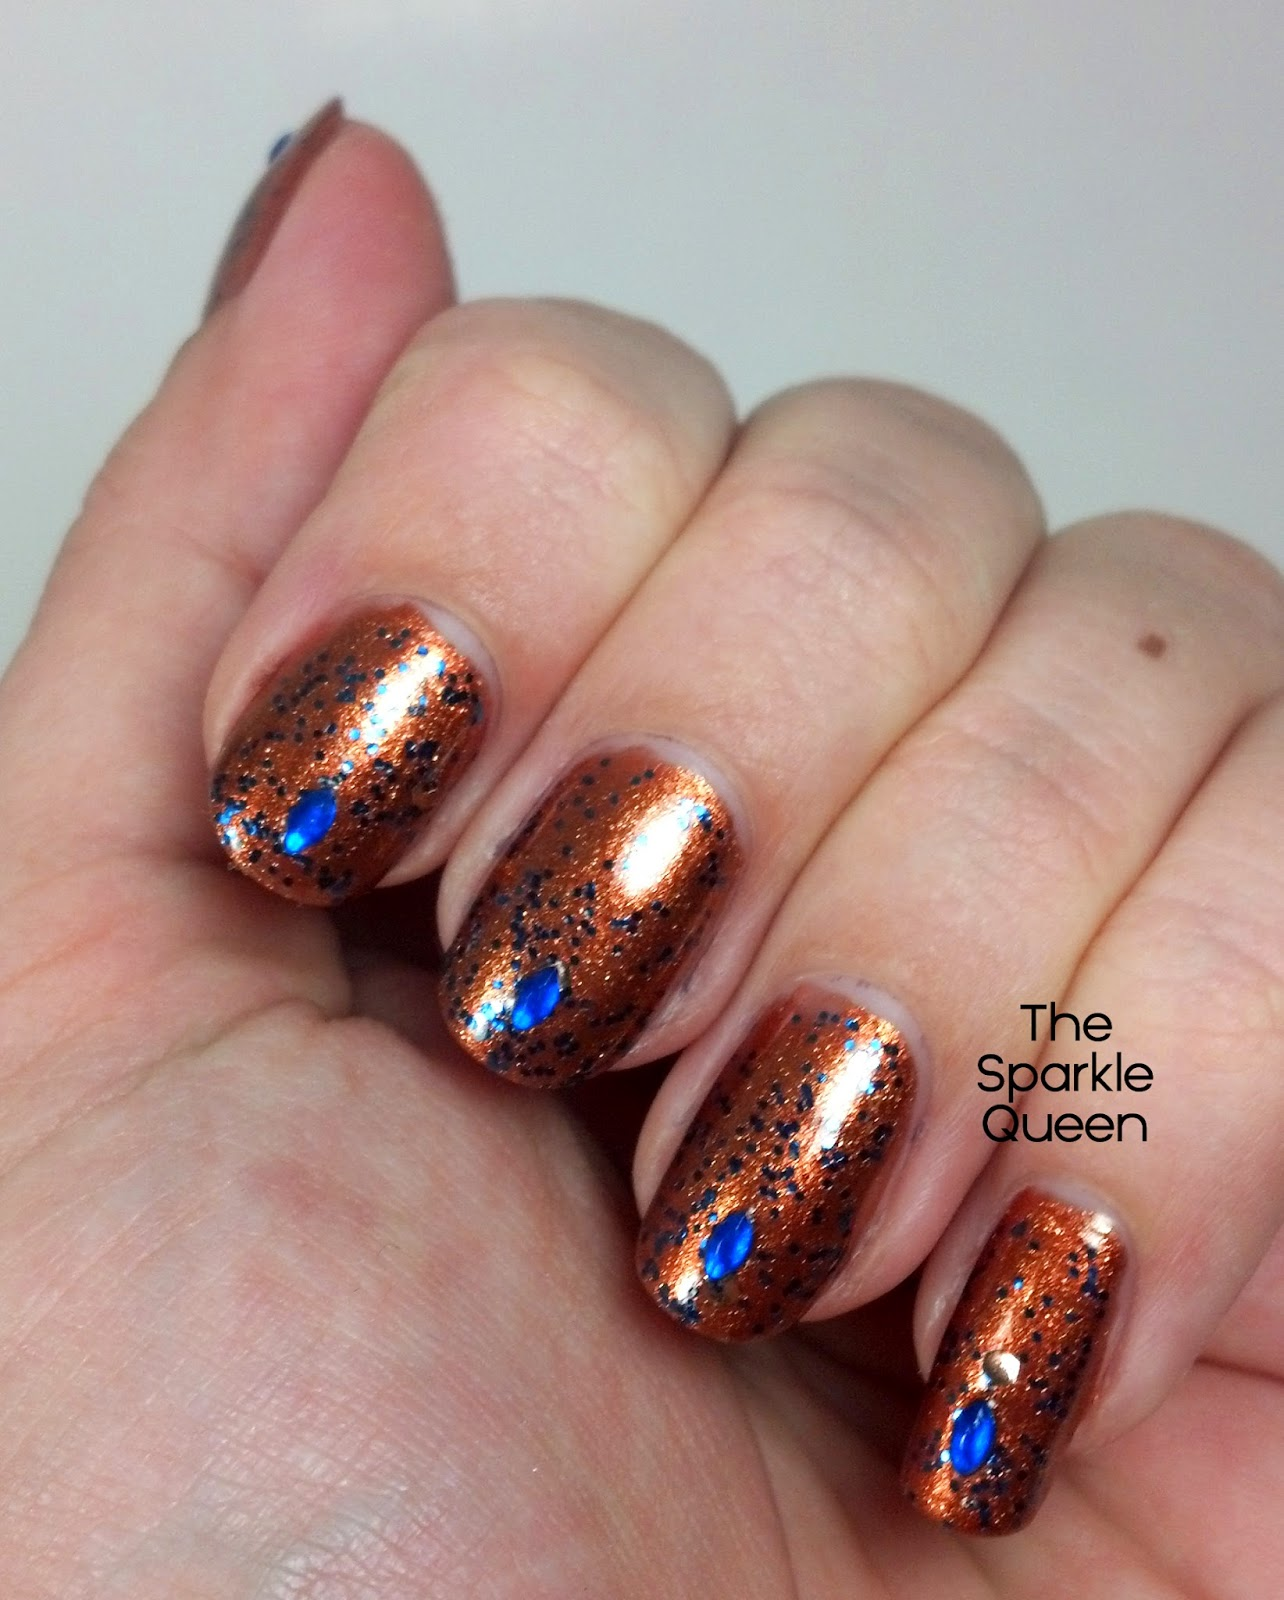 Bronze Glitter Nails for Fall - A Sparkly Life for Me